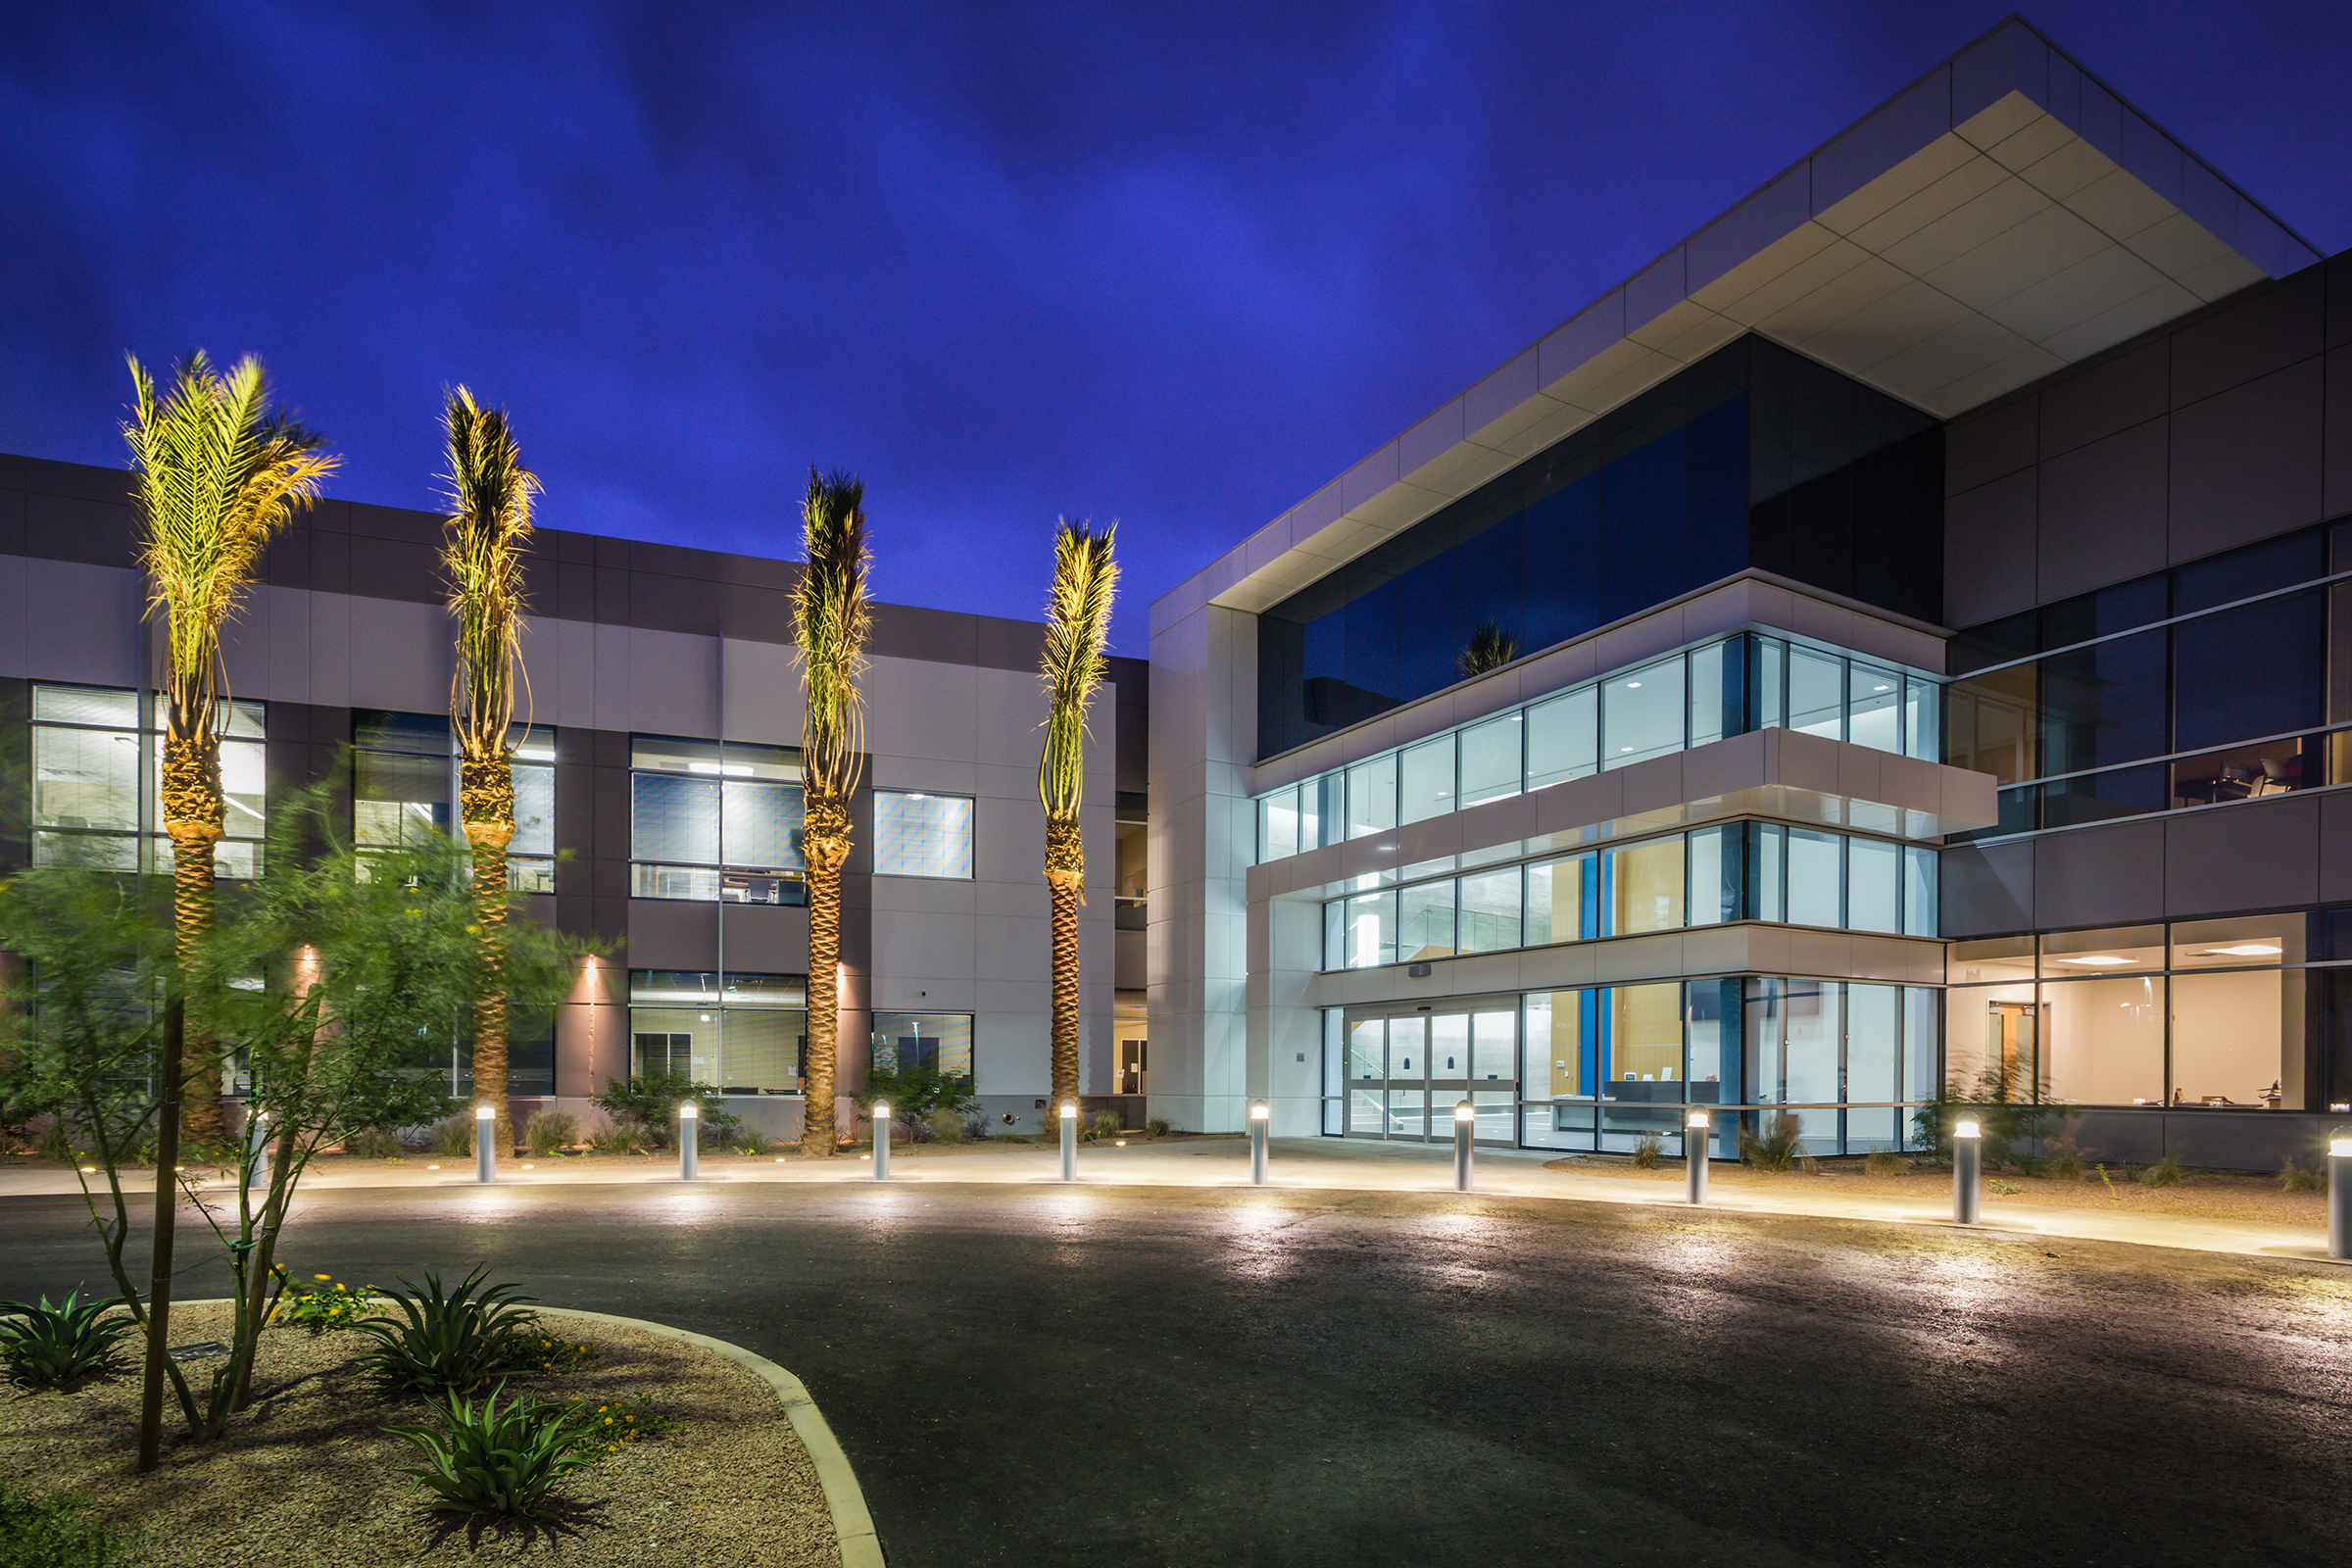 Real Estate Commercial : Arizona real estate photography